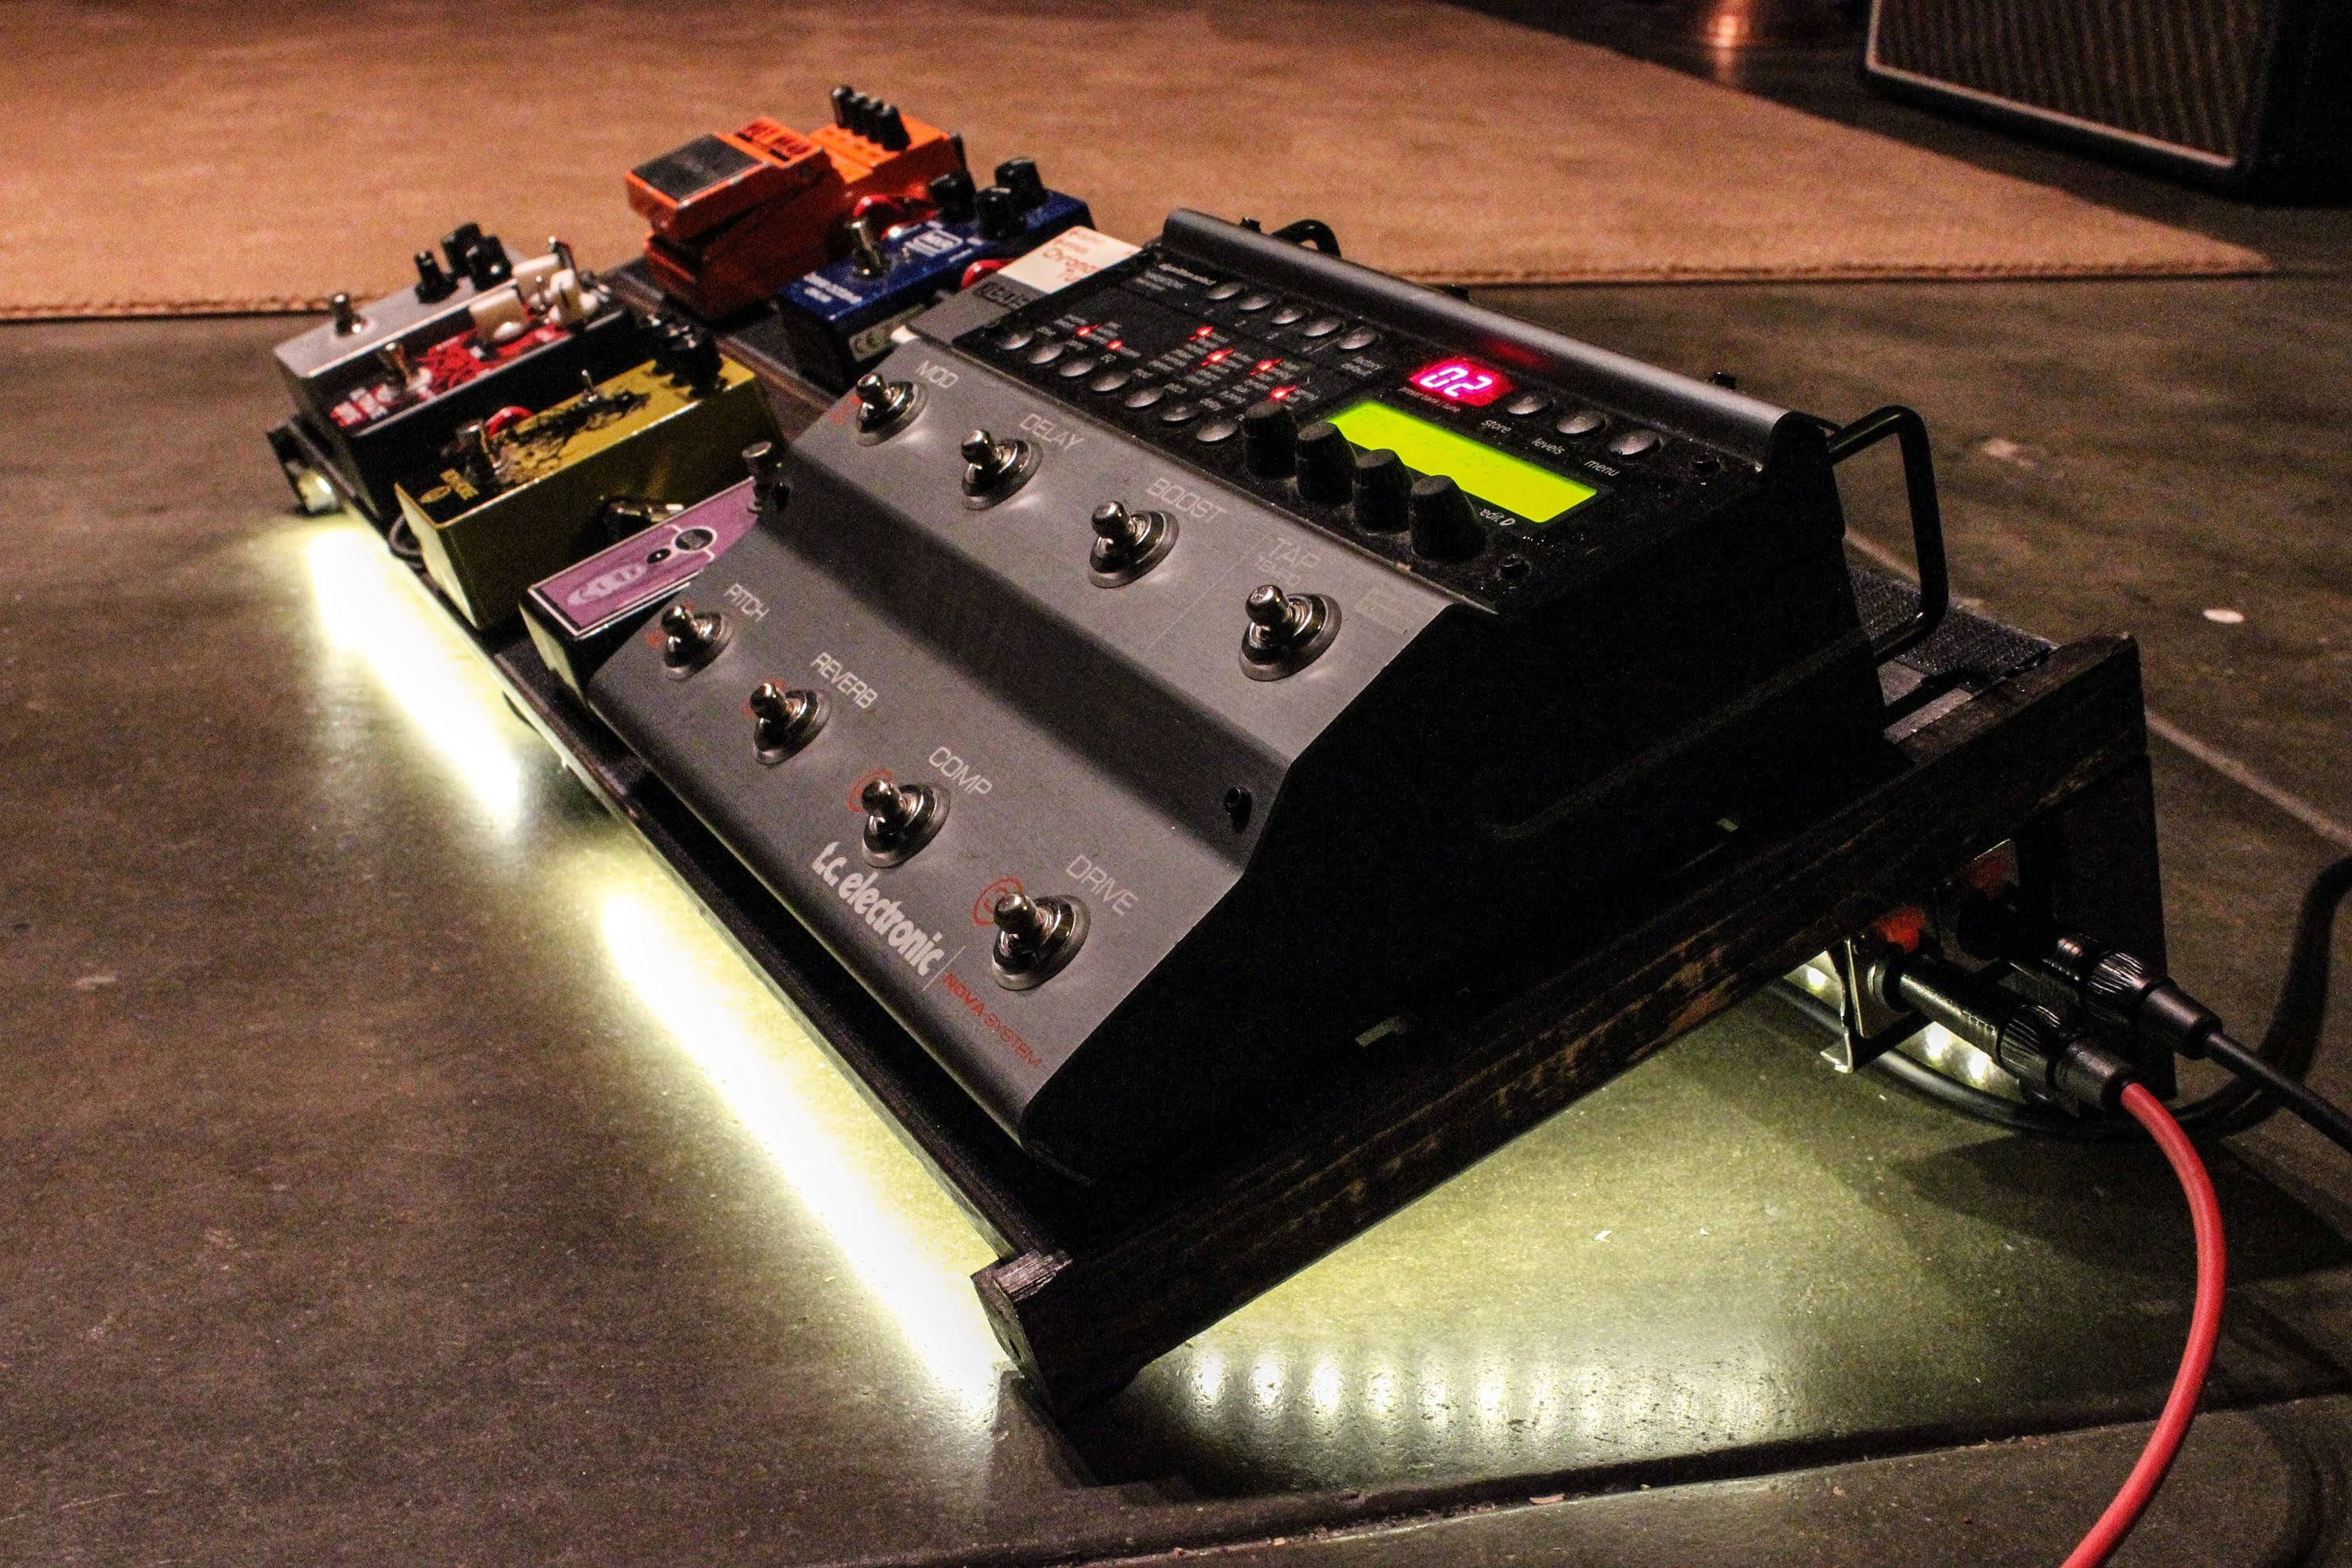 Best ideas about DIY Pedal Board . Save or Pin How to build a DIY Guitar Pedalboard for $19 tax Now.